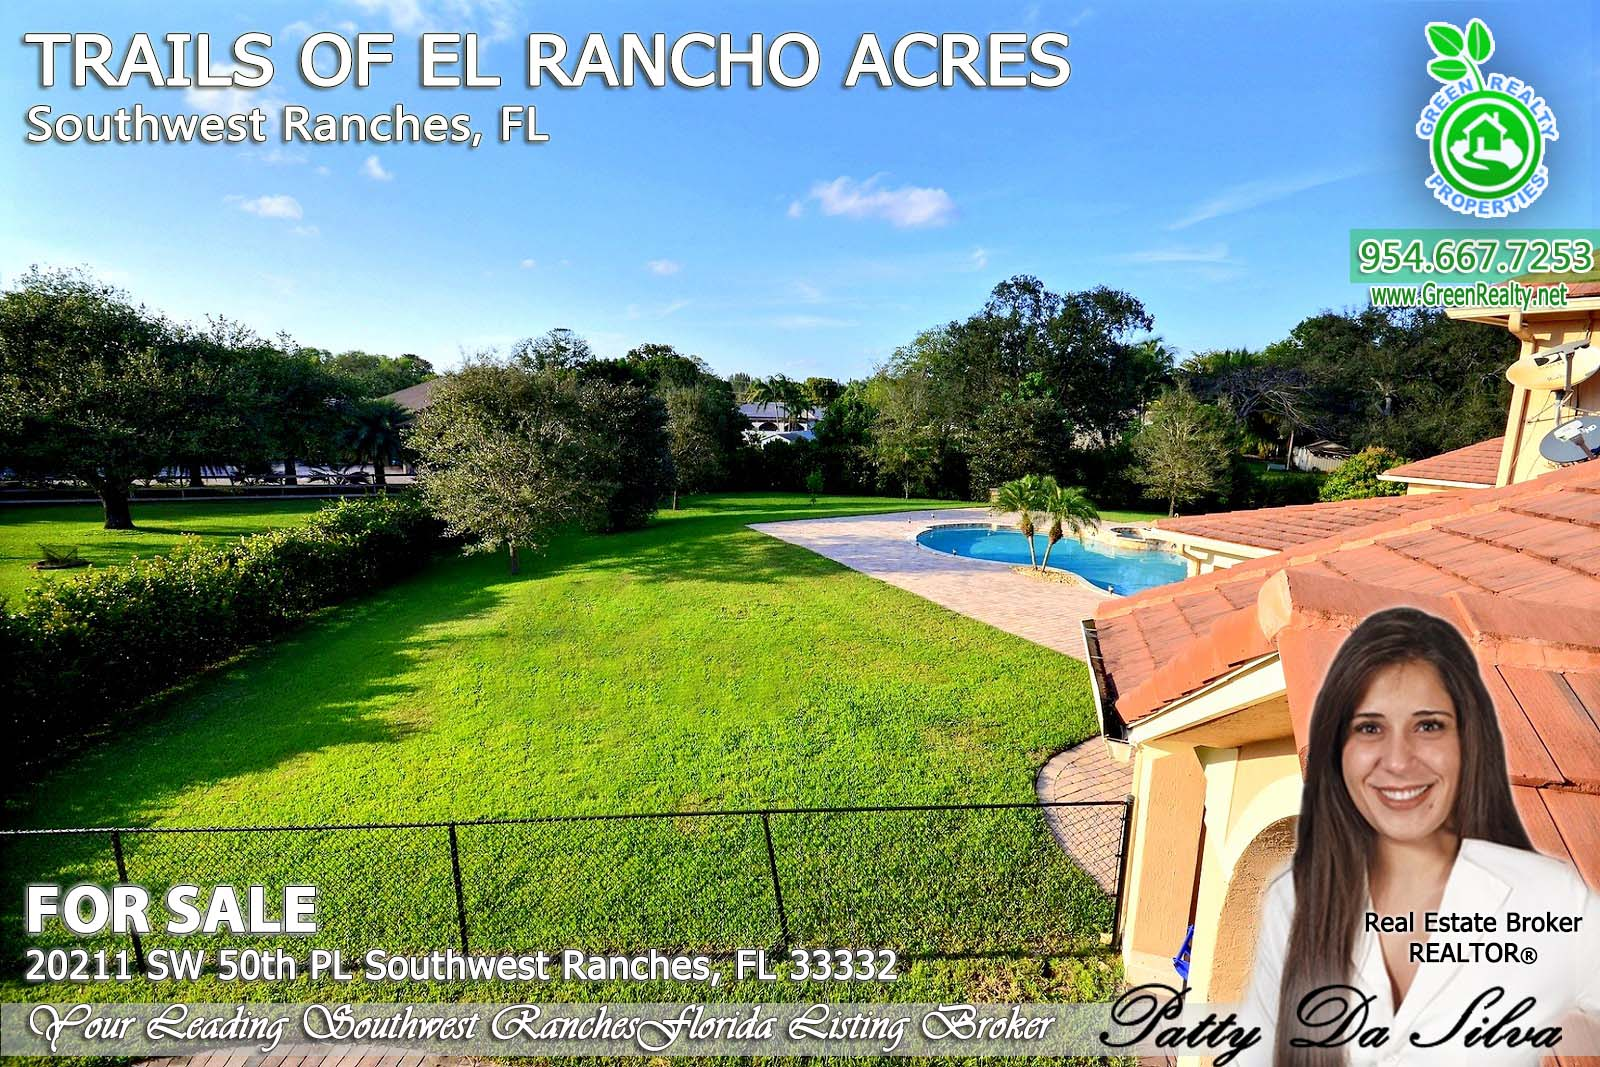 20211 SW 50th PL, Southwest Ranches, FL 33332 (74)